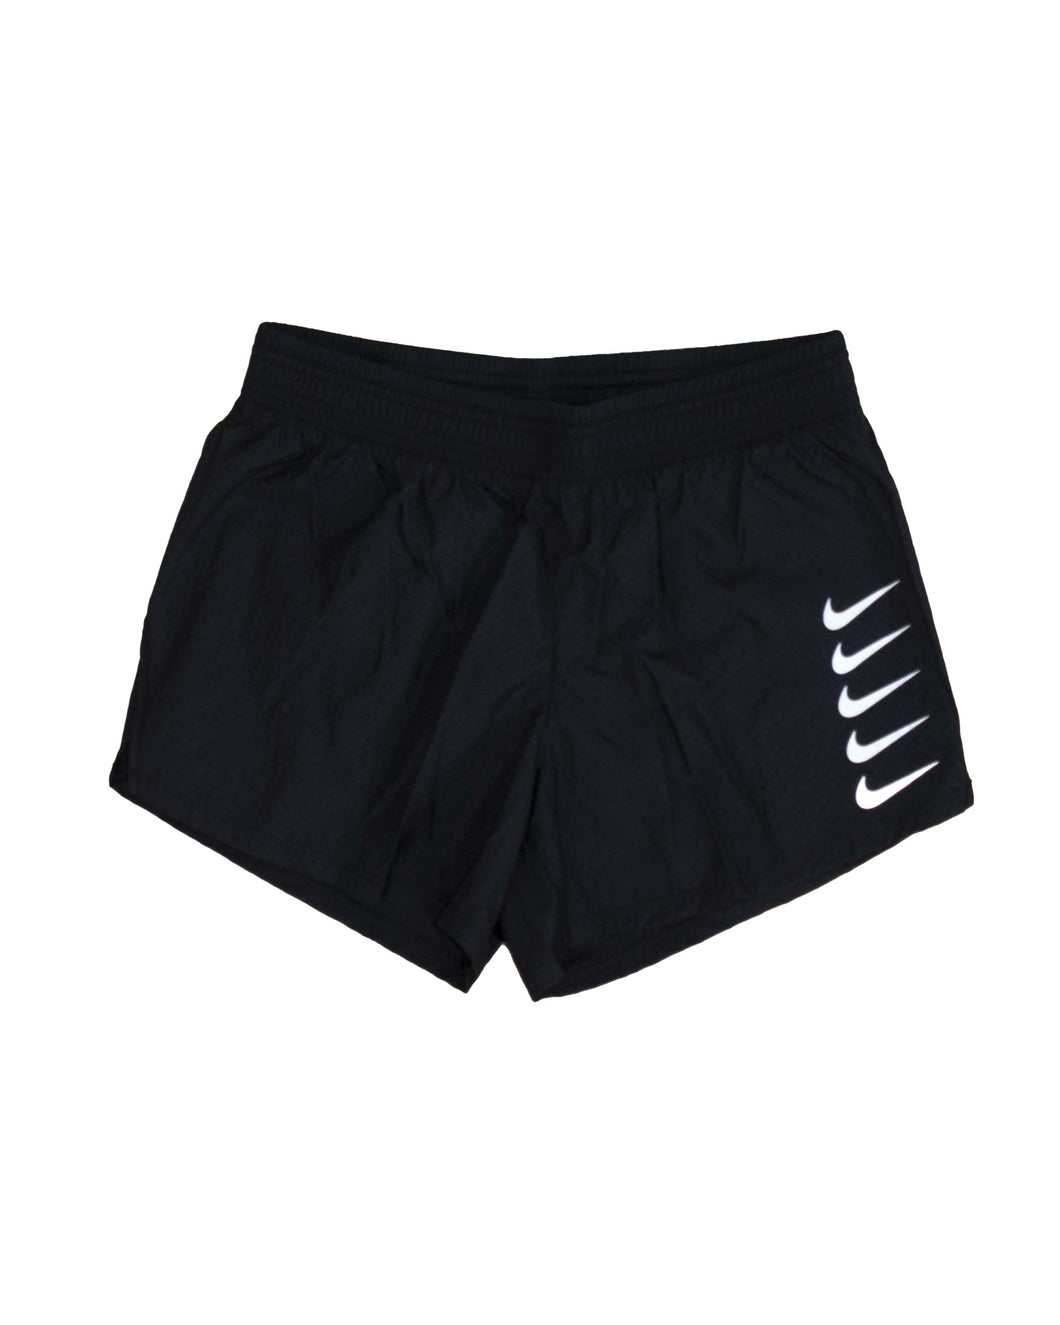 Nike Short Swoosh Run Black White